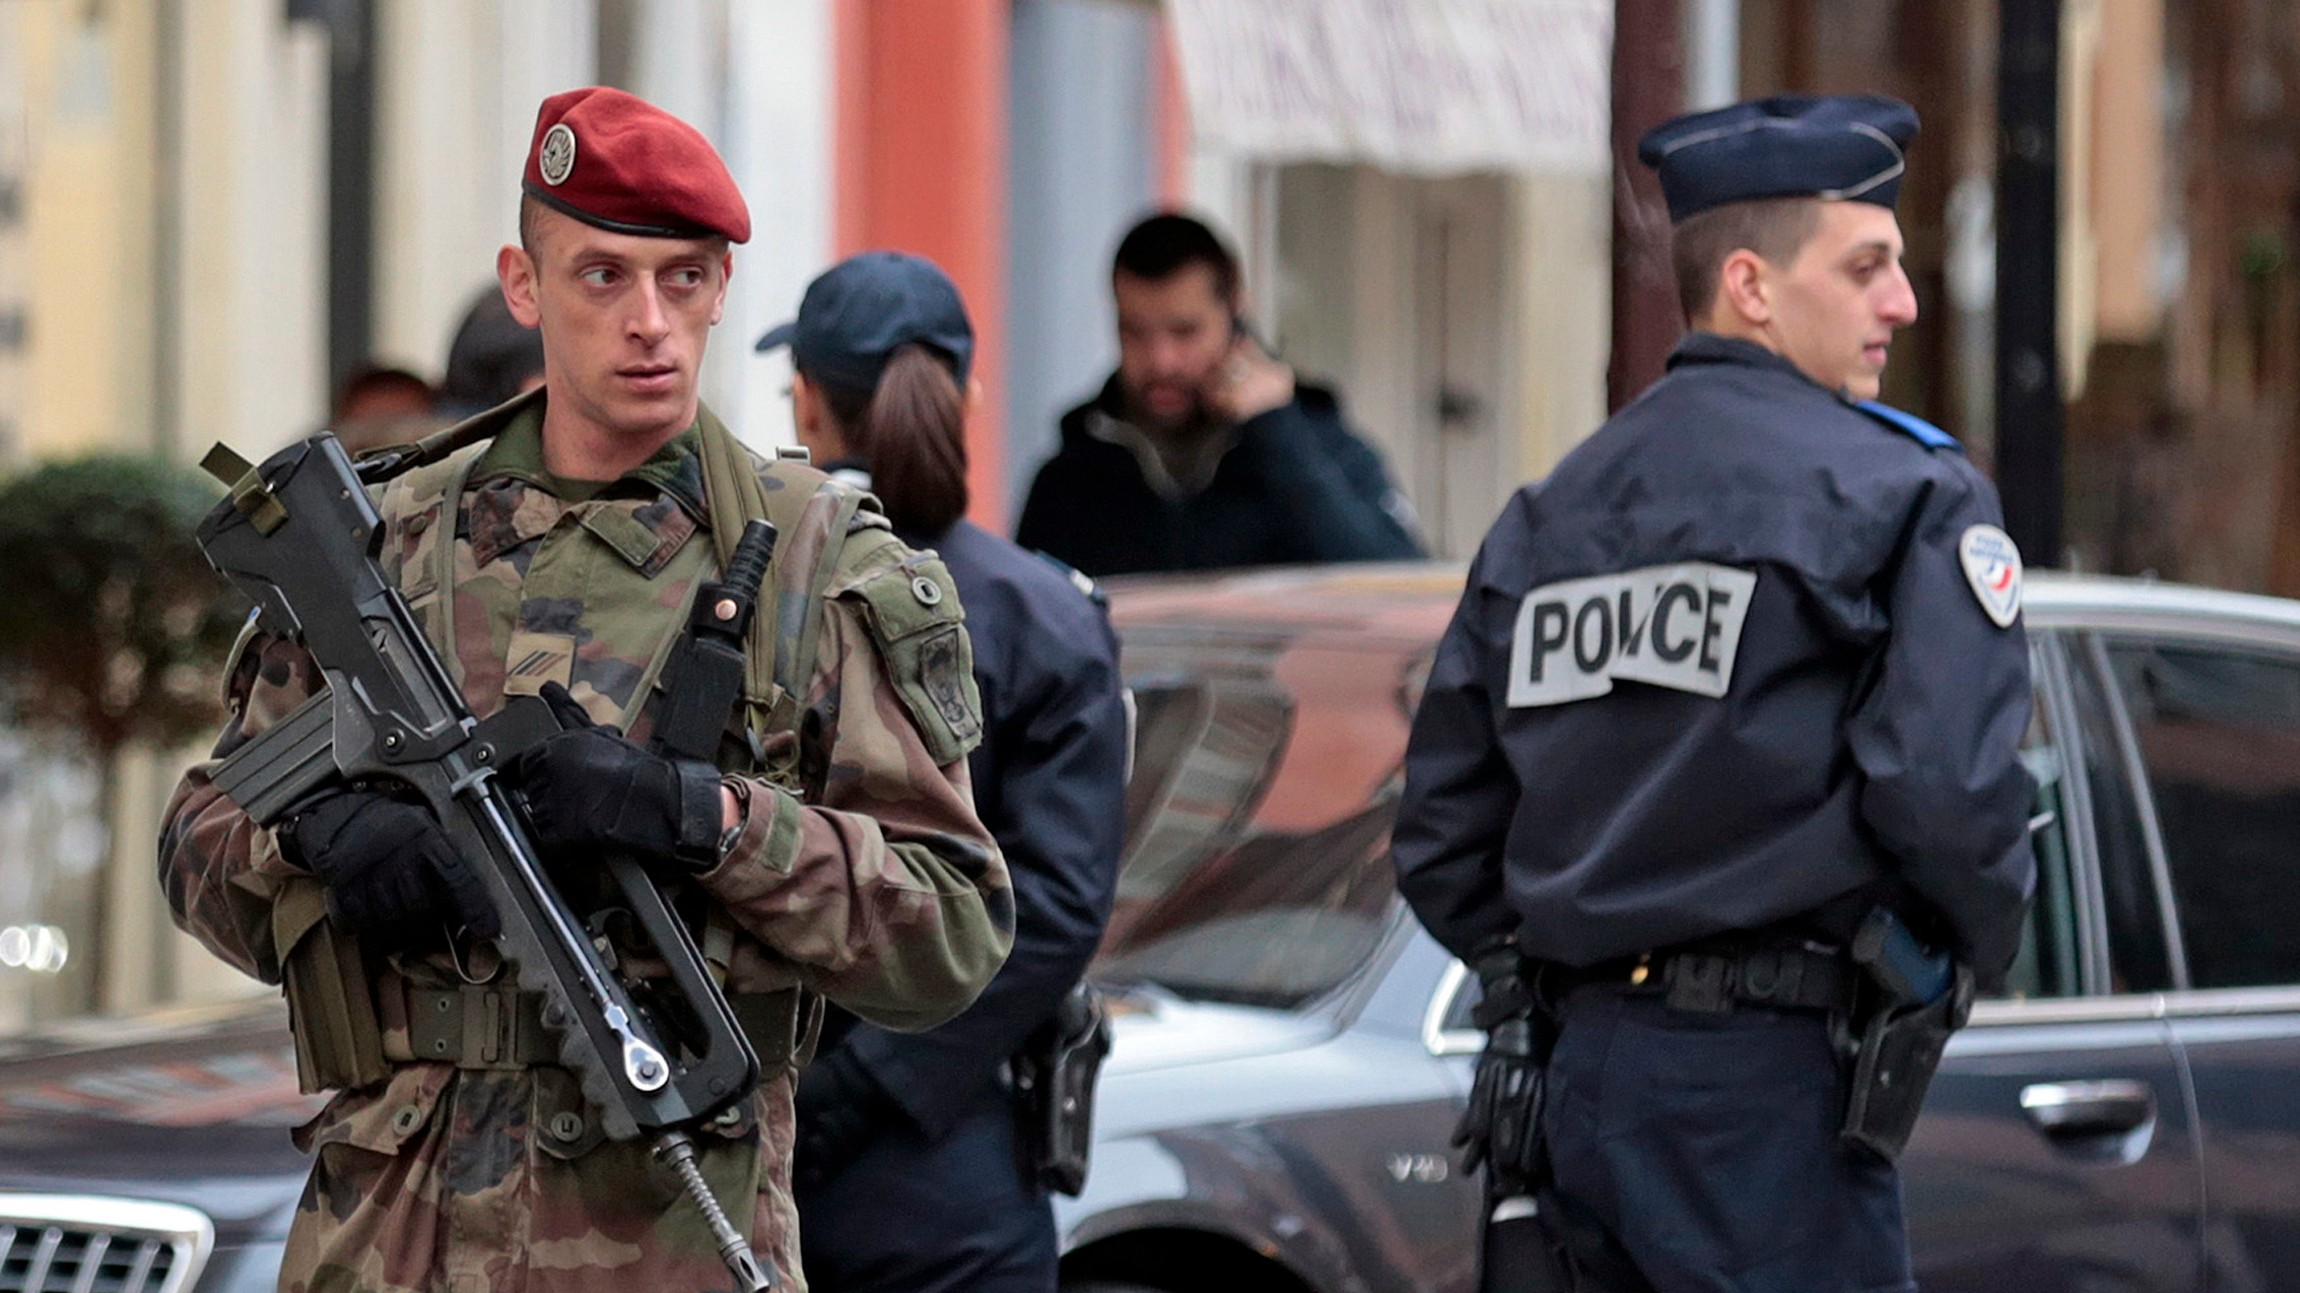 French Police Investigating Knife Attack Suspect's Attempted Trip to Turkey